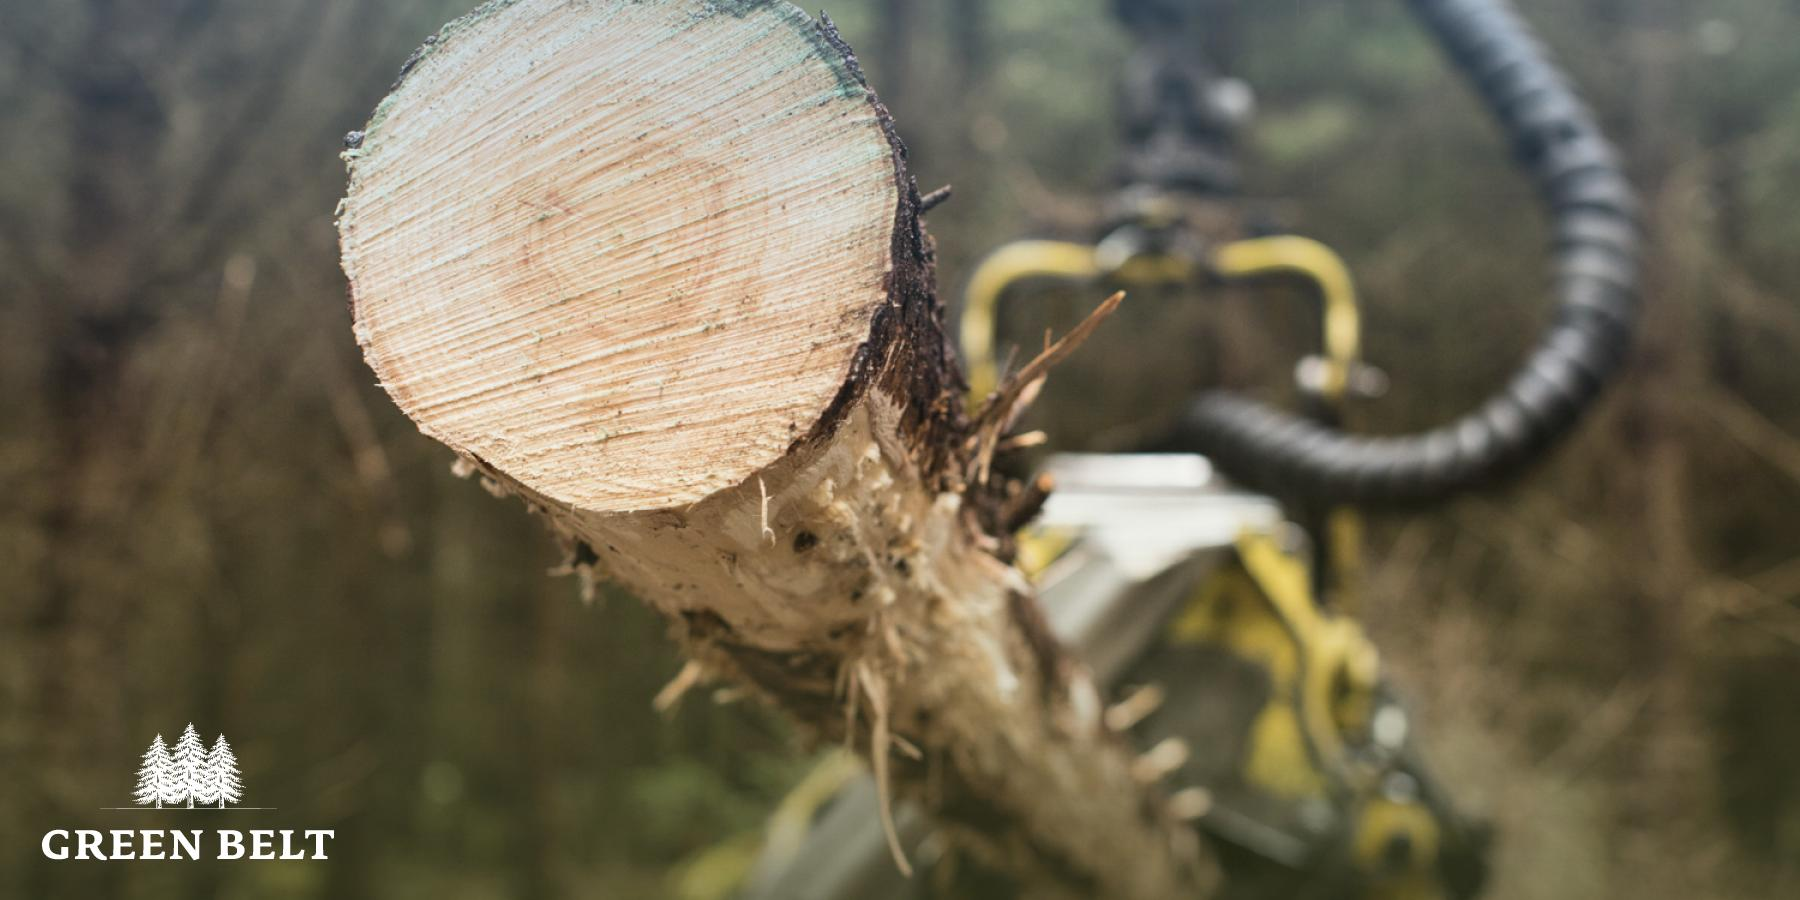 Green Belt - Your Forestry, Your Future | Green Belt